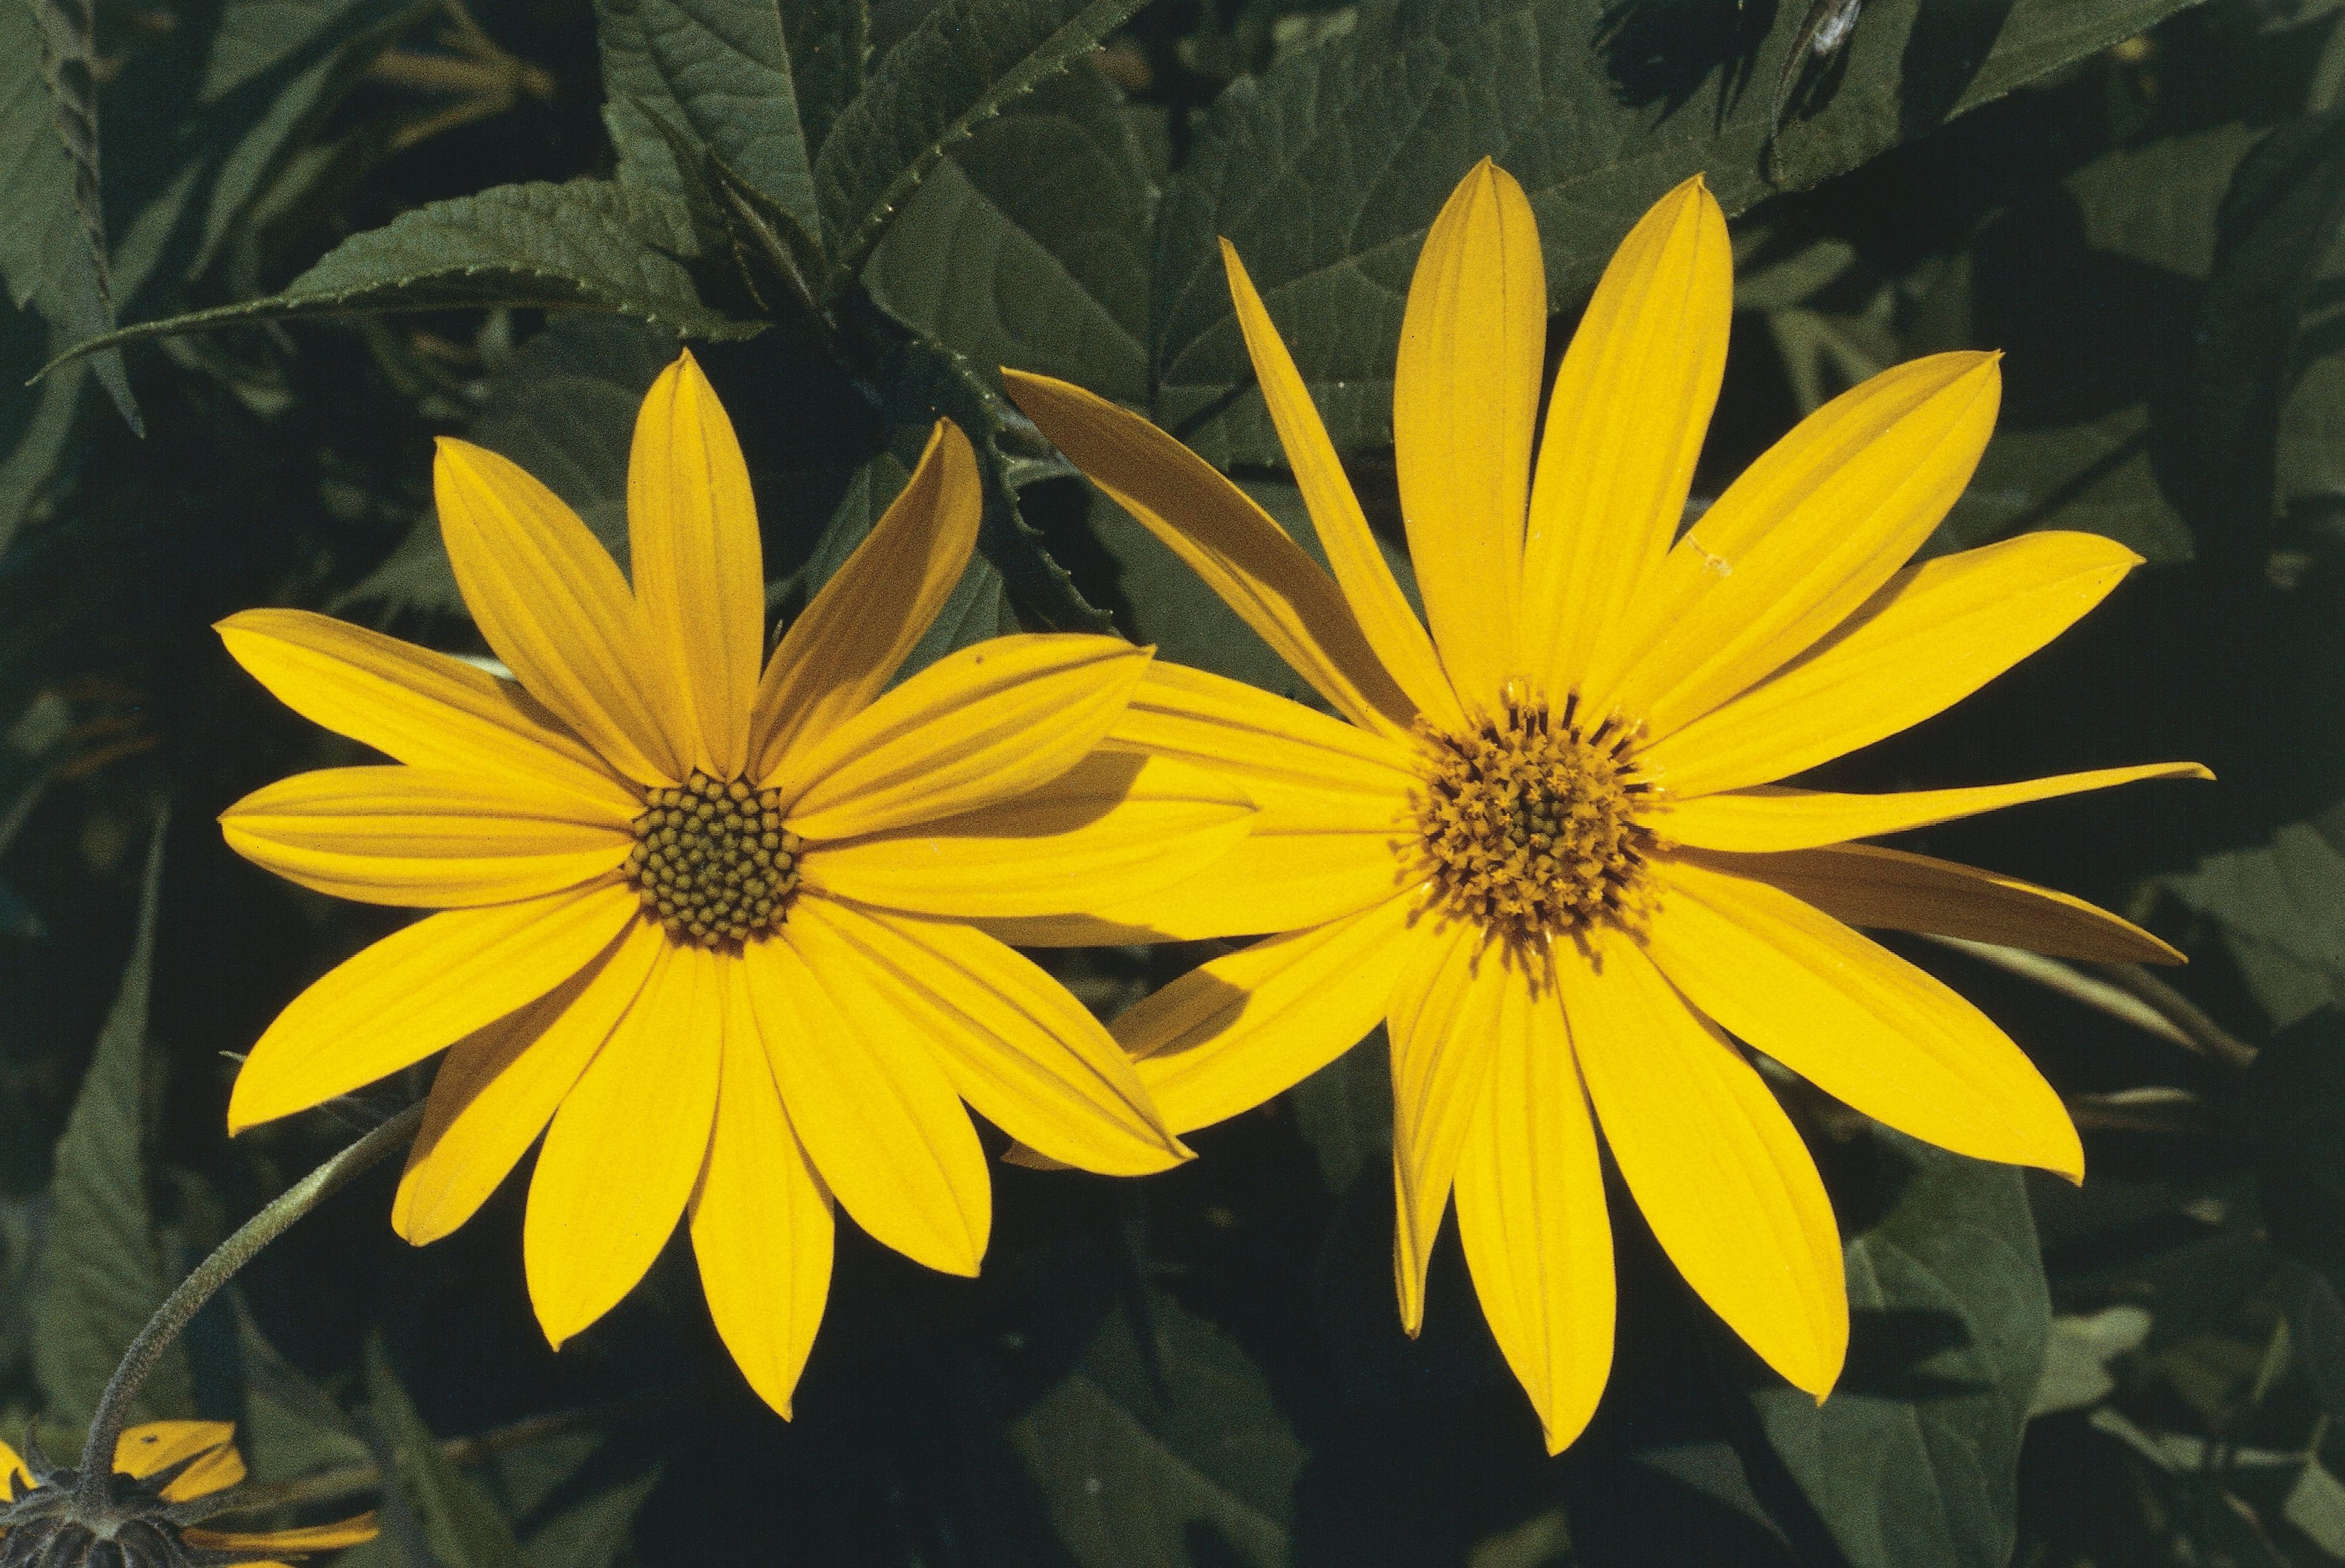 Top 15 fall blooming flowers for a perennial garden helianthus perennial sunflower mightylinksfo